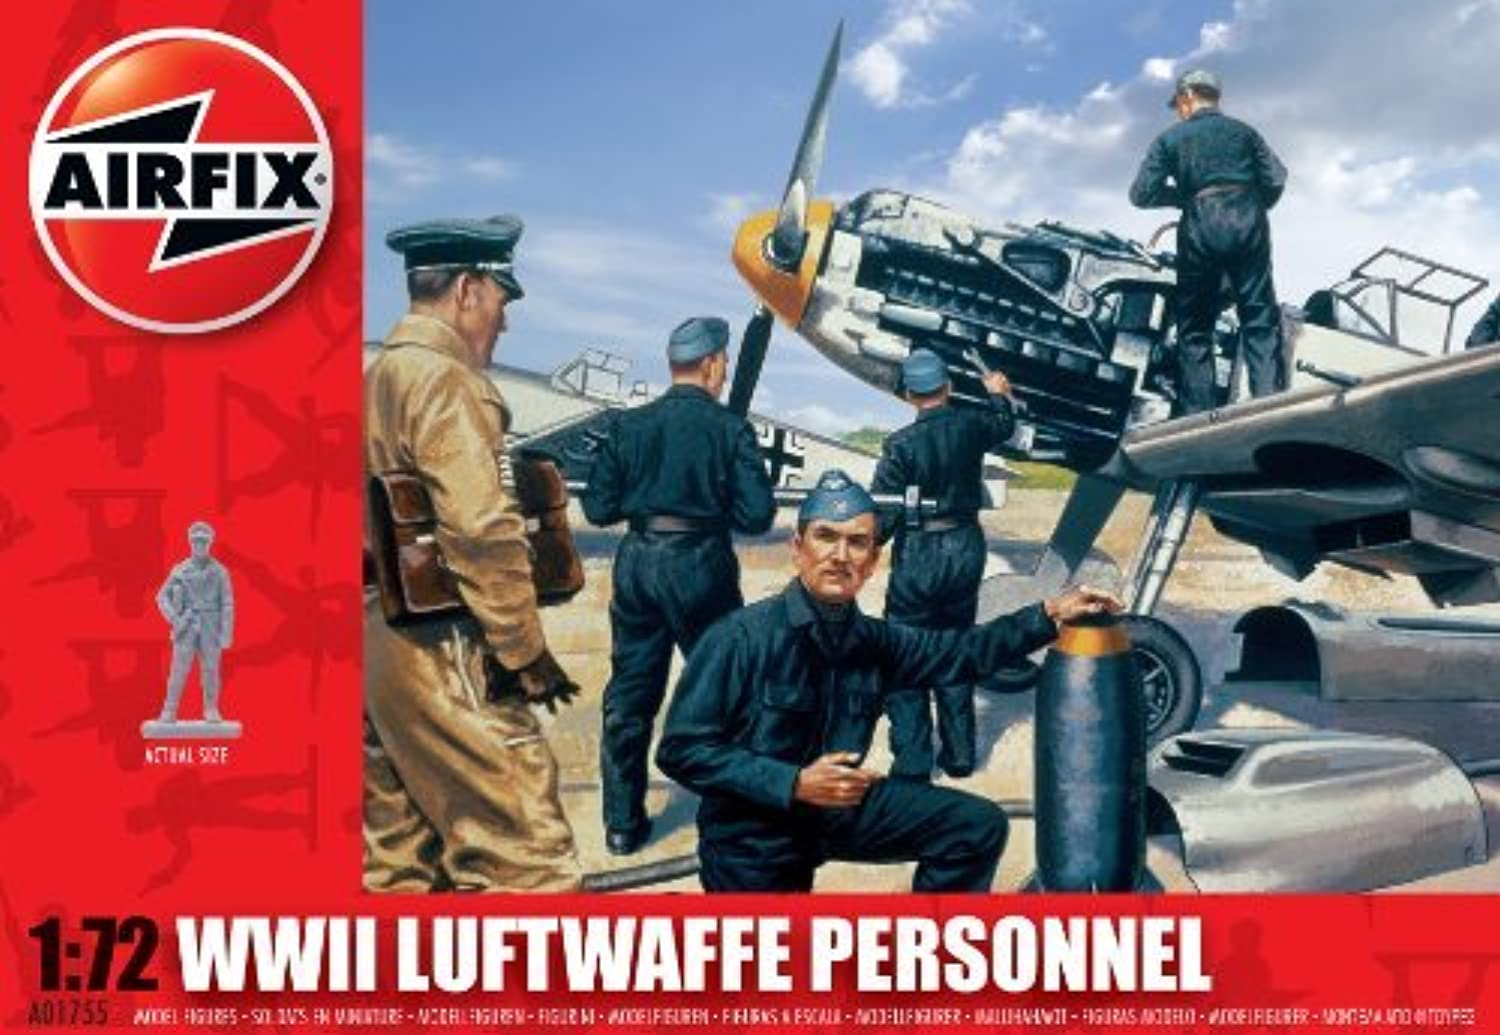 Airfix A01755 WWII Luftwaffe Personnel 1 72 Scale Series 1 Plastic Figures by Airfix